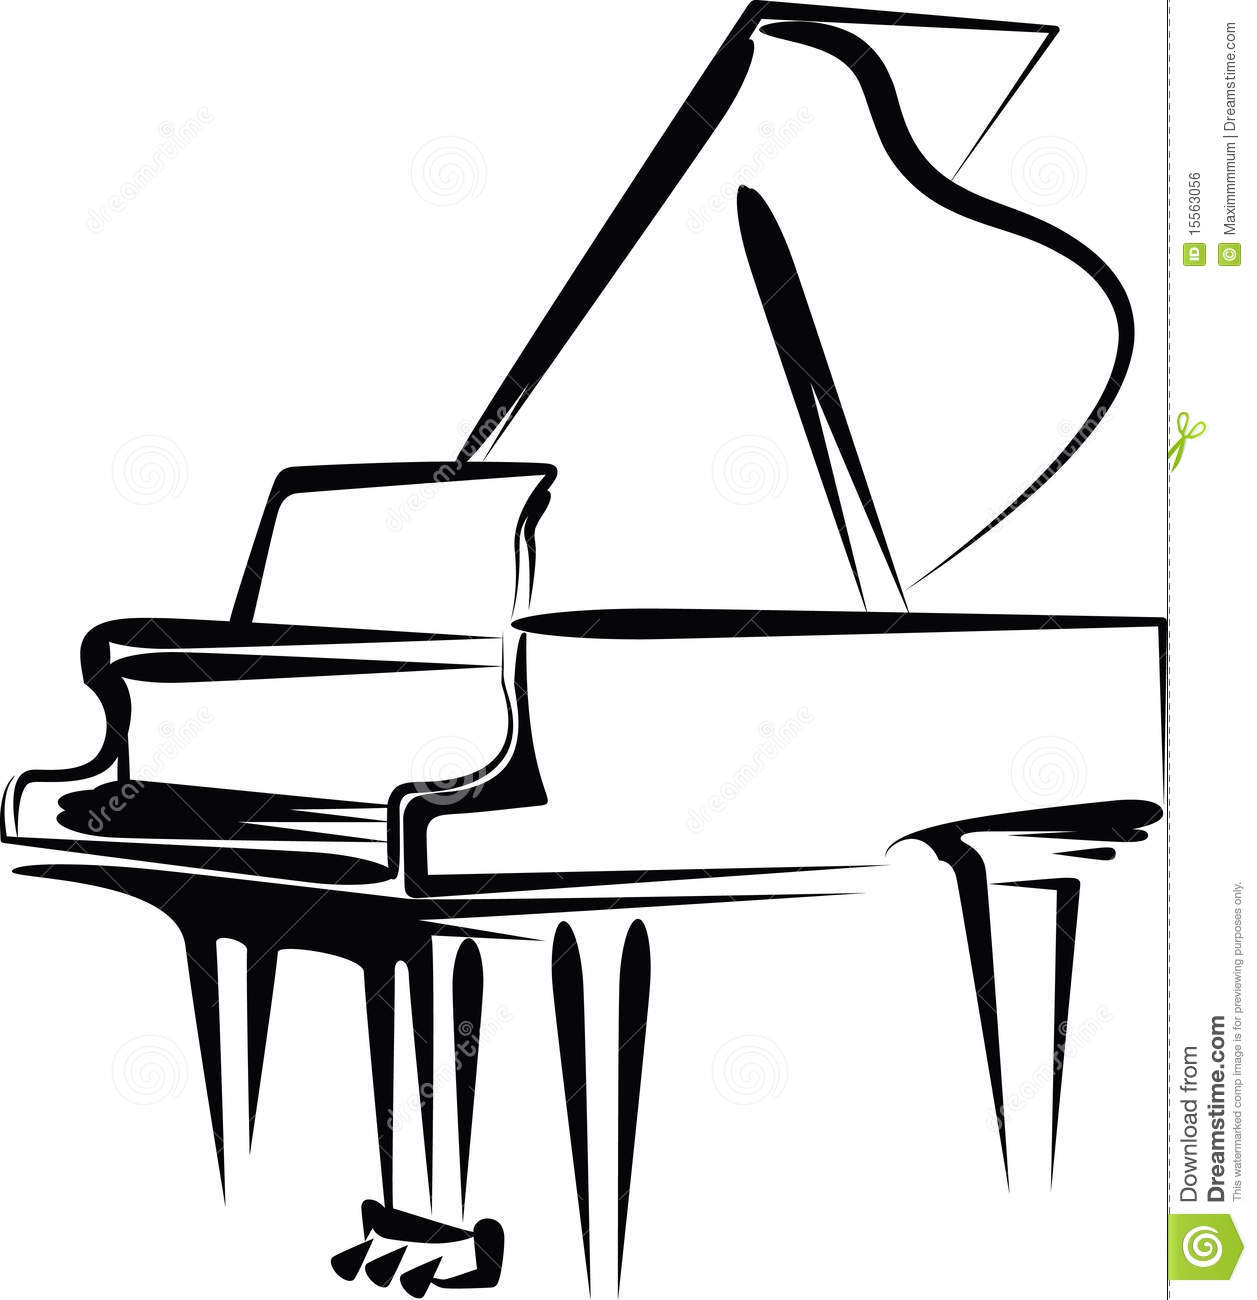 grand piano silhouette at getdrawings com free for personal use rh getdrawings com free piano clip art borders free clipart piano player